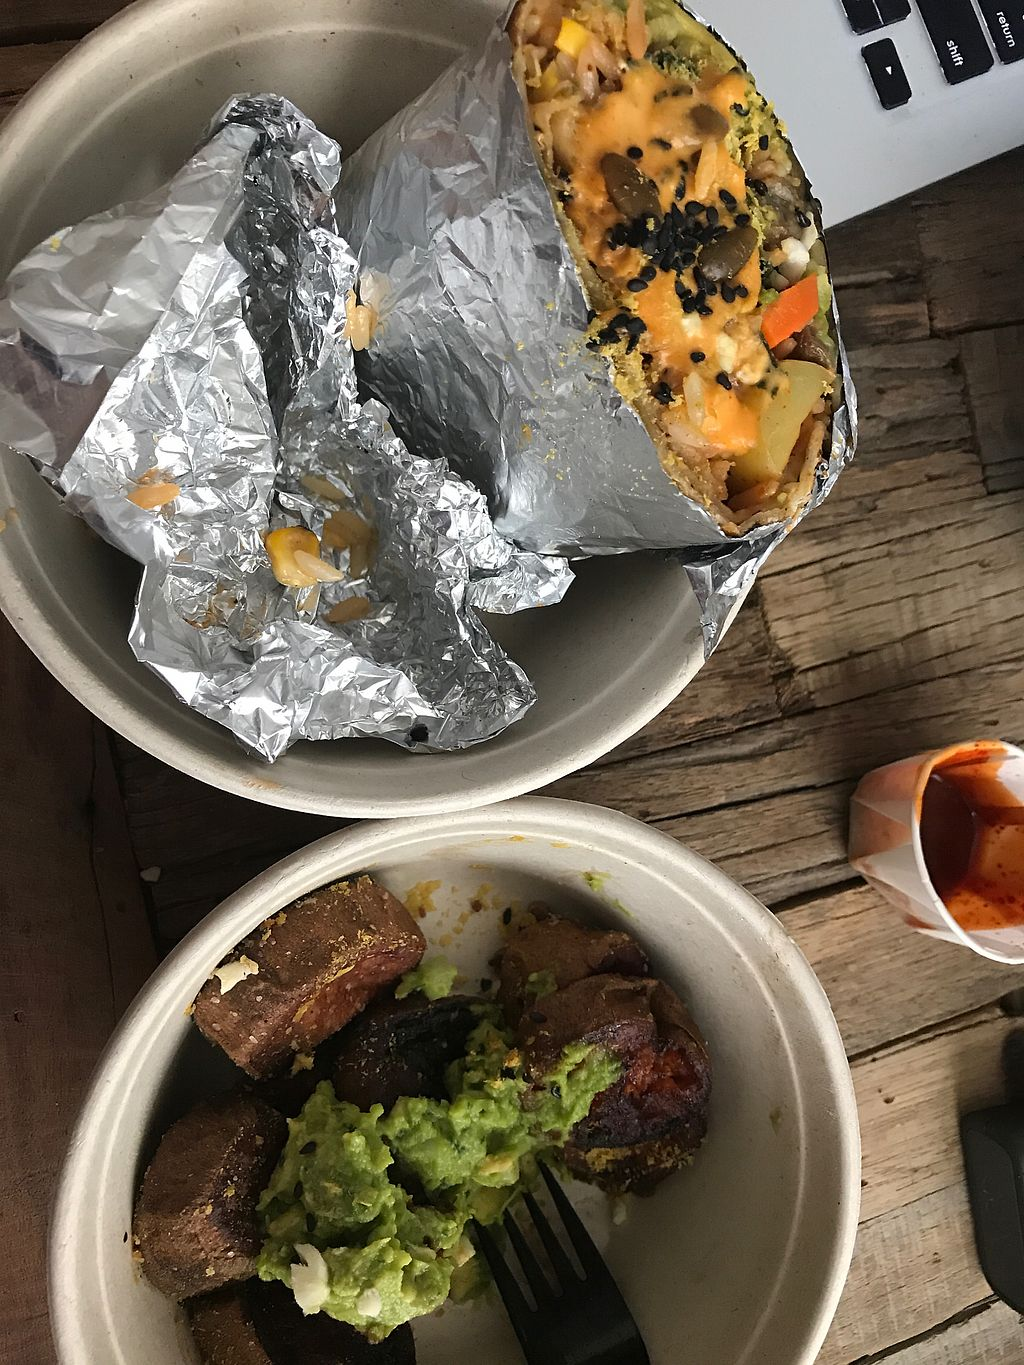 """Photo of Butterleaf  by <a href=""""/members/profile/ScottReutter"""">ScottReutter</a> <br/>burrito and fries <br/> July 10, 2017  - <a href='/contact/abuse/image/93067/278502'>Report</a>"""